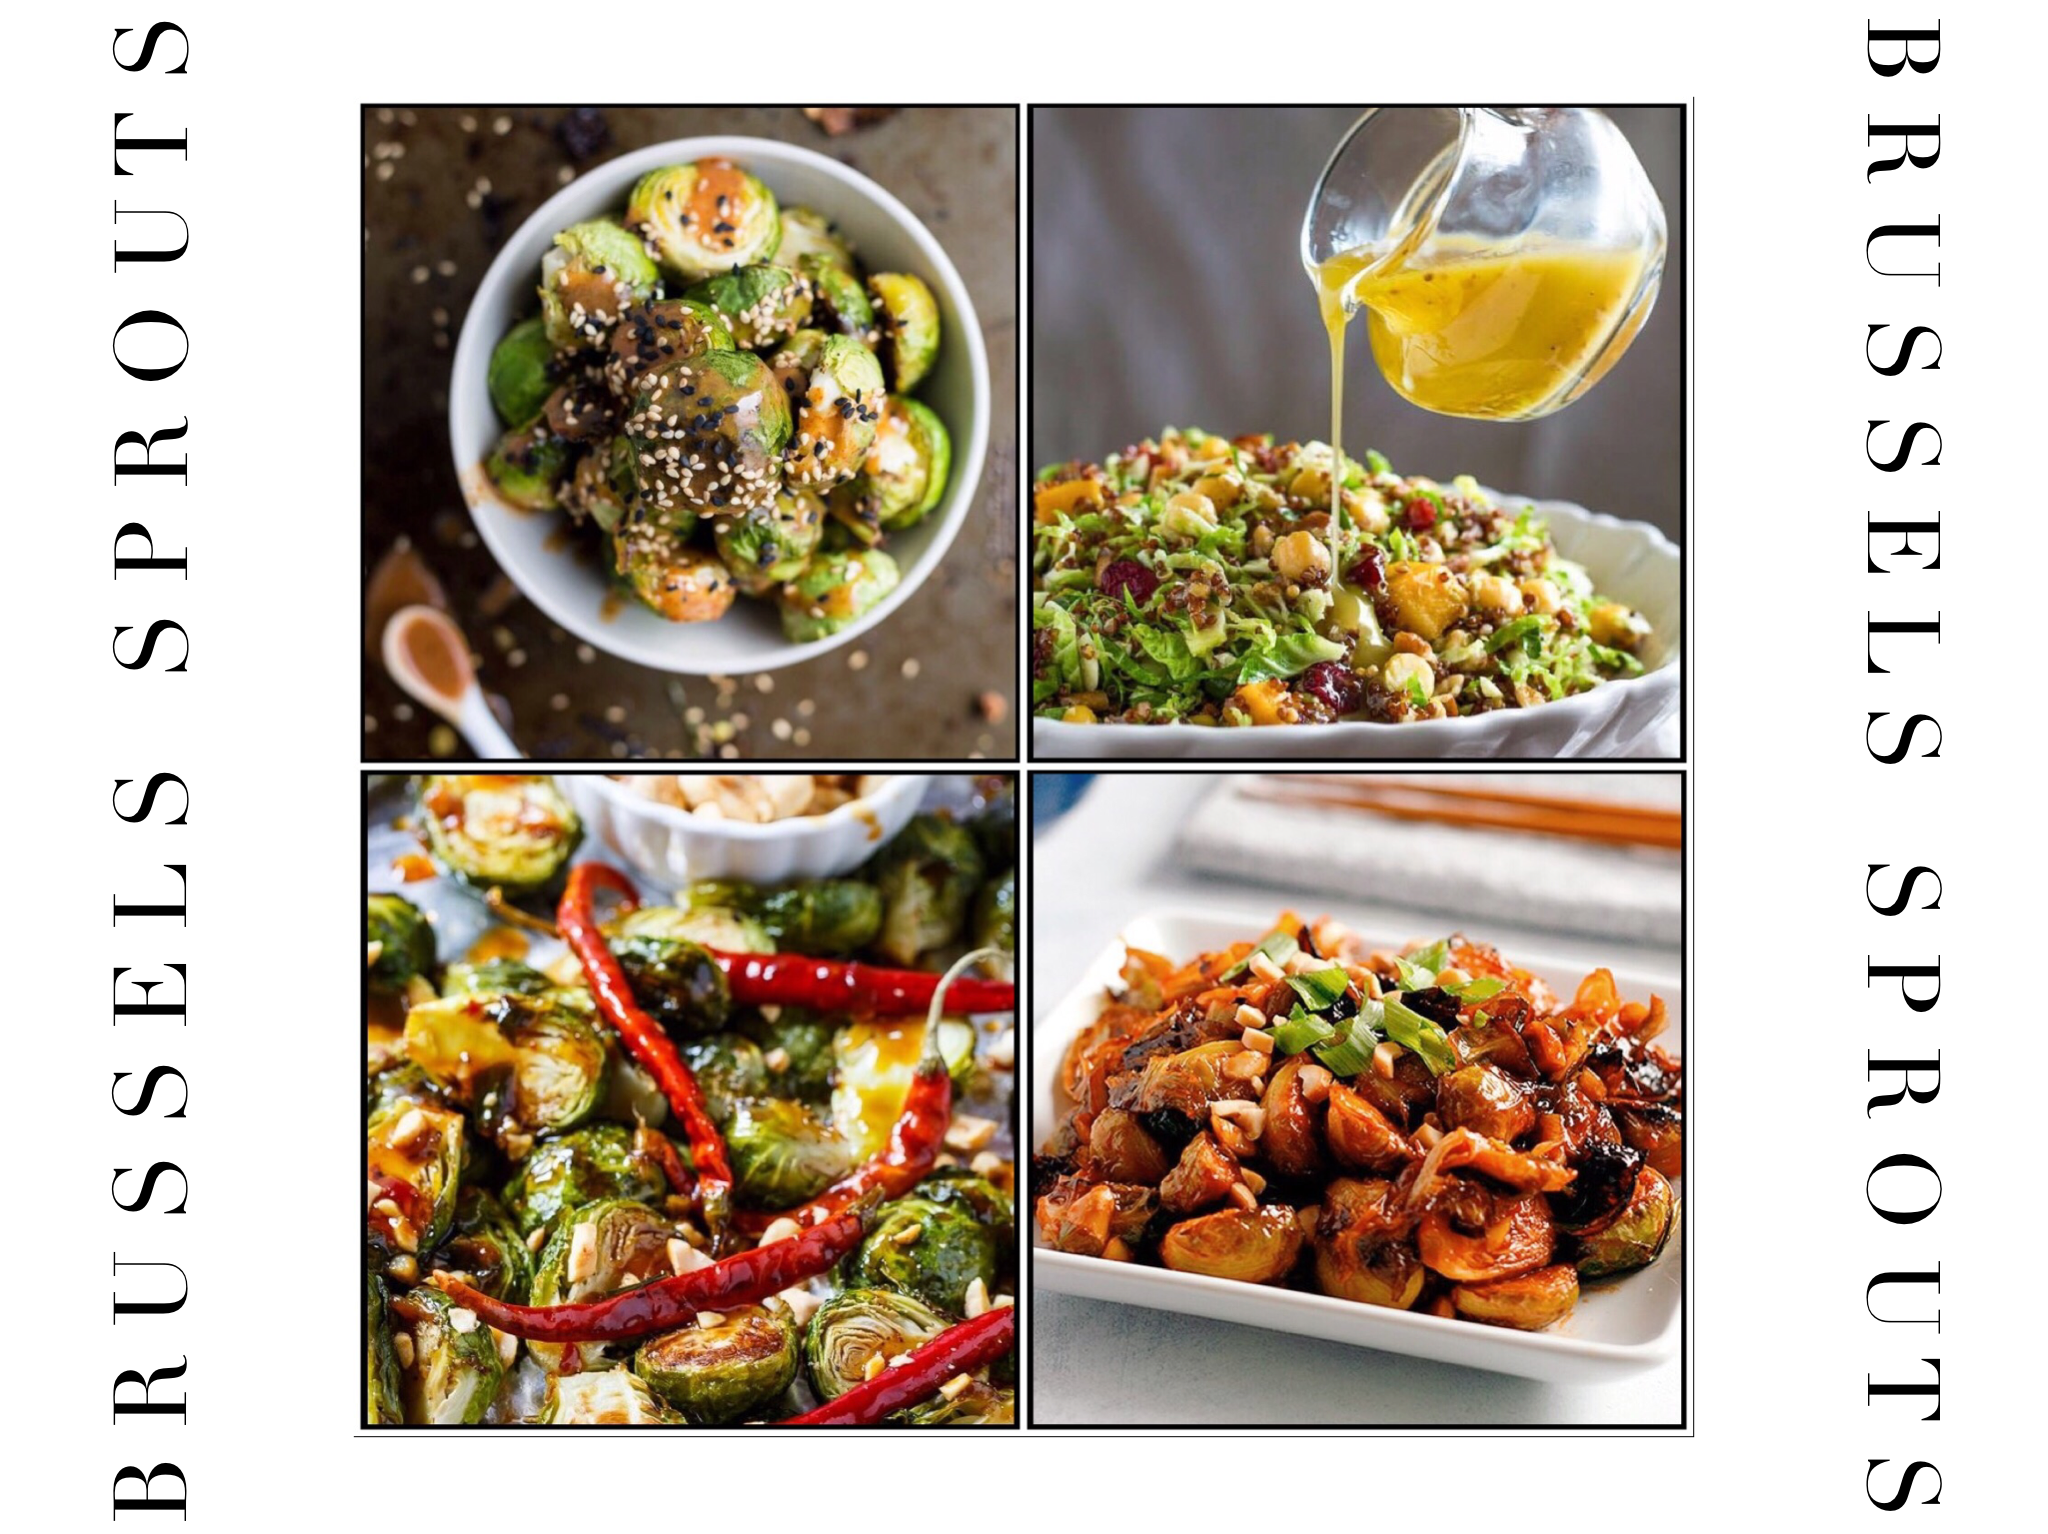 Brussels Sprouts - These leafy green have gotten a bad reputation but the key is knowing how to cook them. It's nutty and savory, high in nutrients and low in calories.See 5 ways to make brussel sprouts tasty